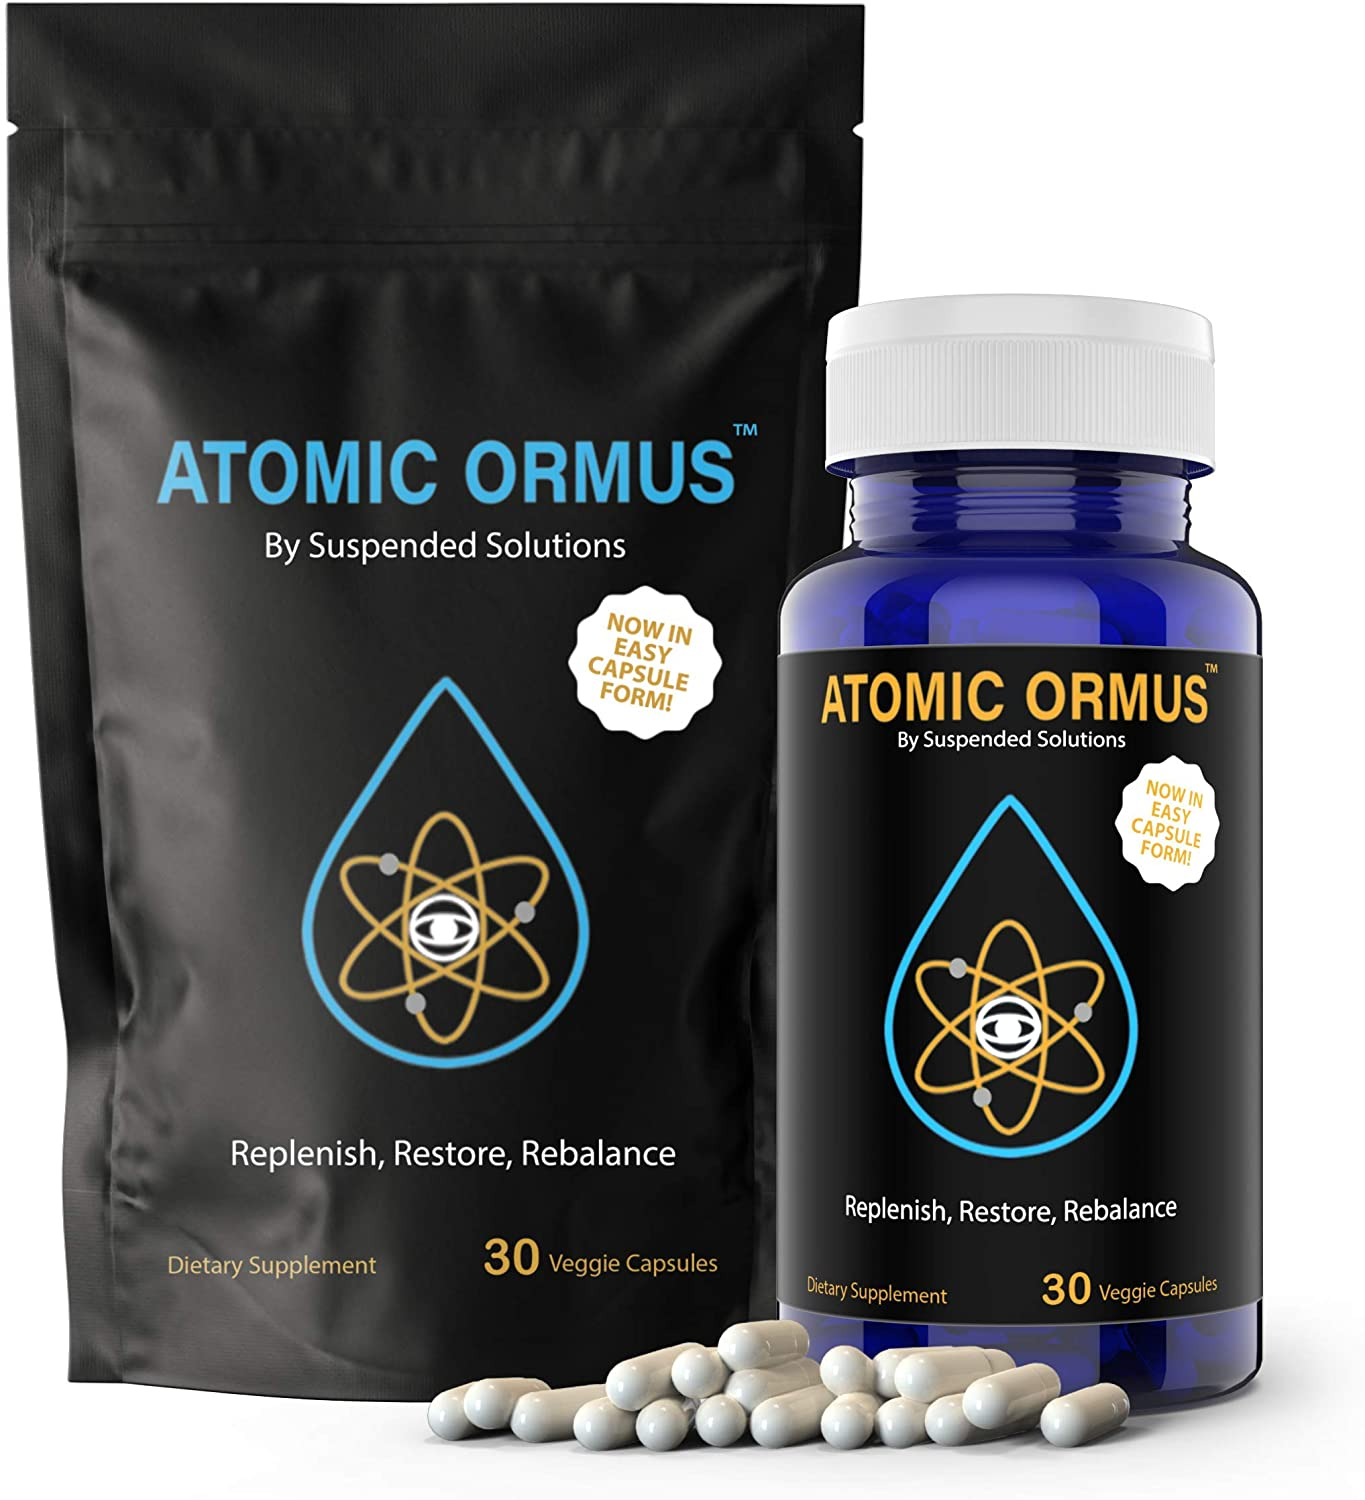 Suspended Solutions - Atomic 5% OFF ORMUS MONATOMIC C Capsules Gold free shipping